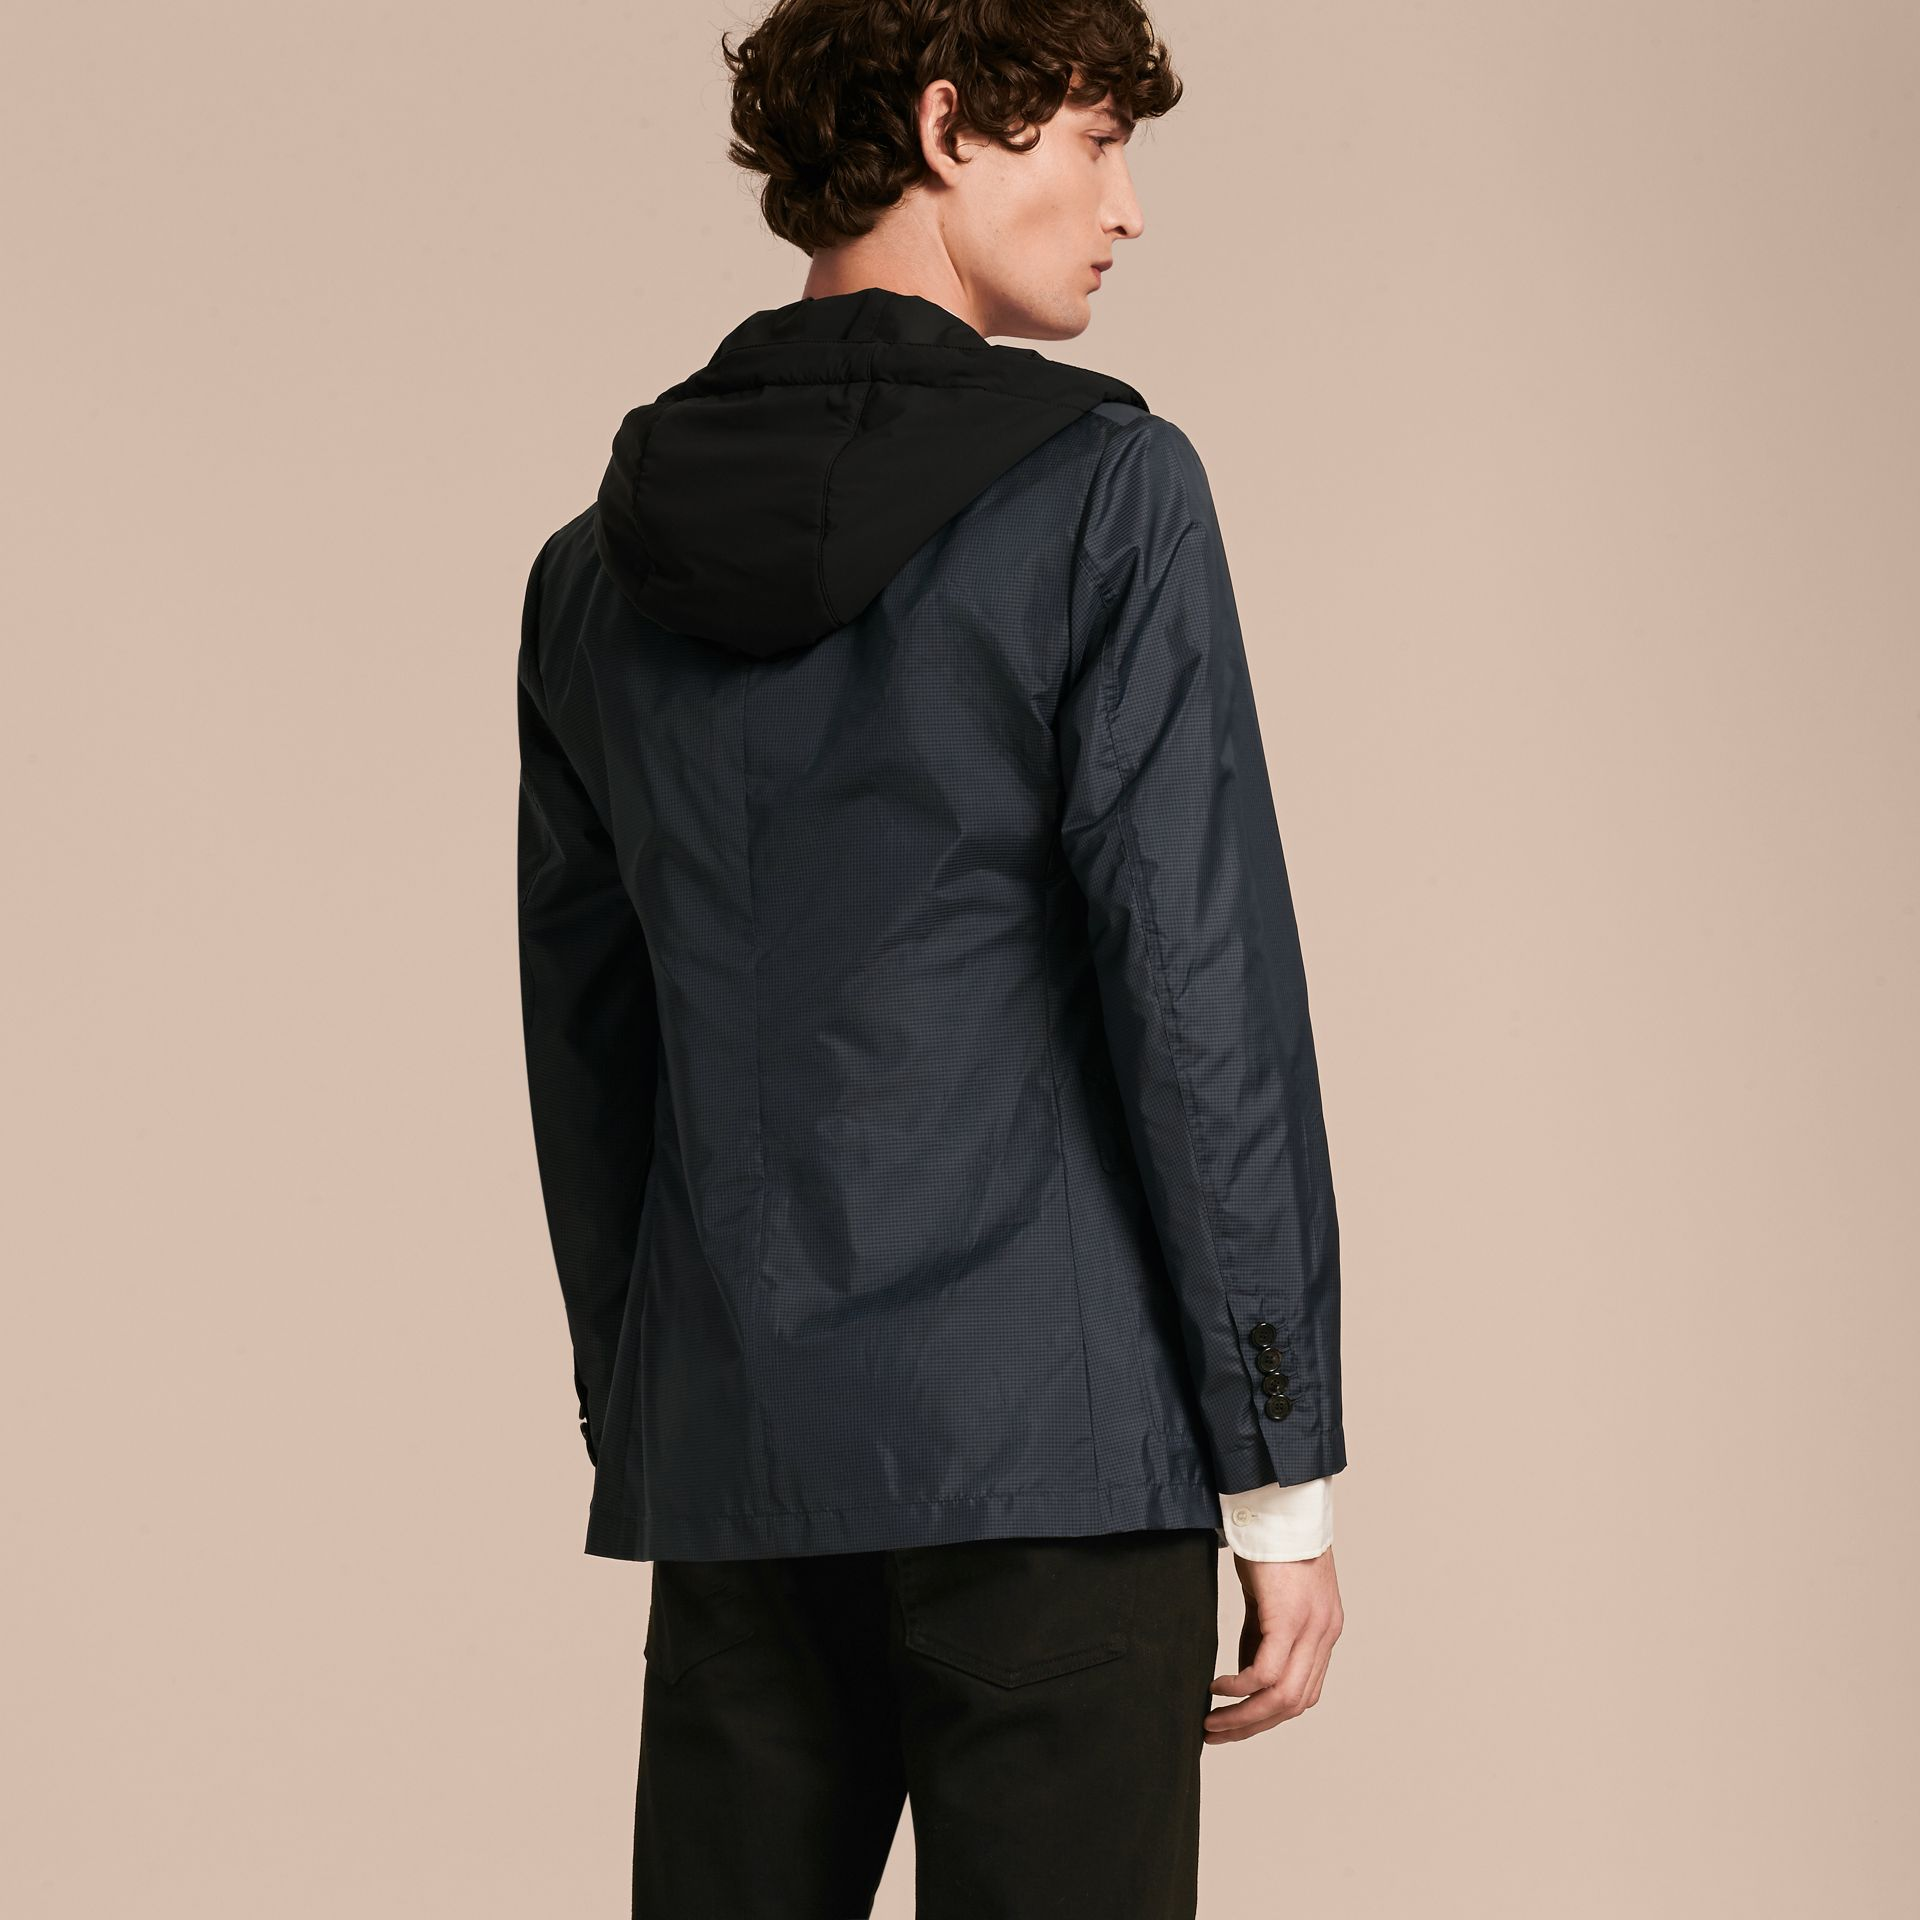 Technical Silk Jacket with Detachable Hooded Warmer - gallery image 3